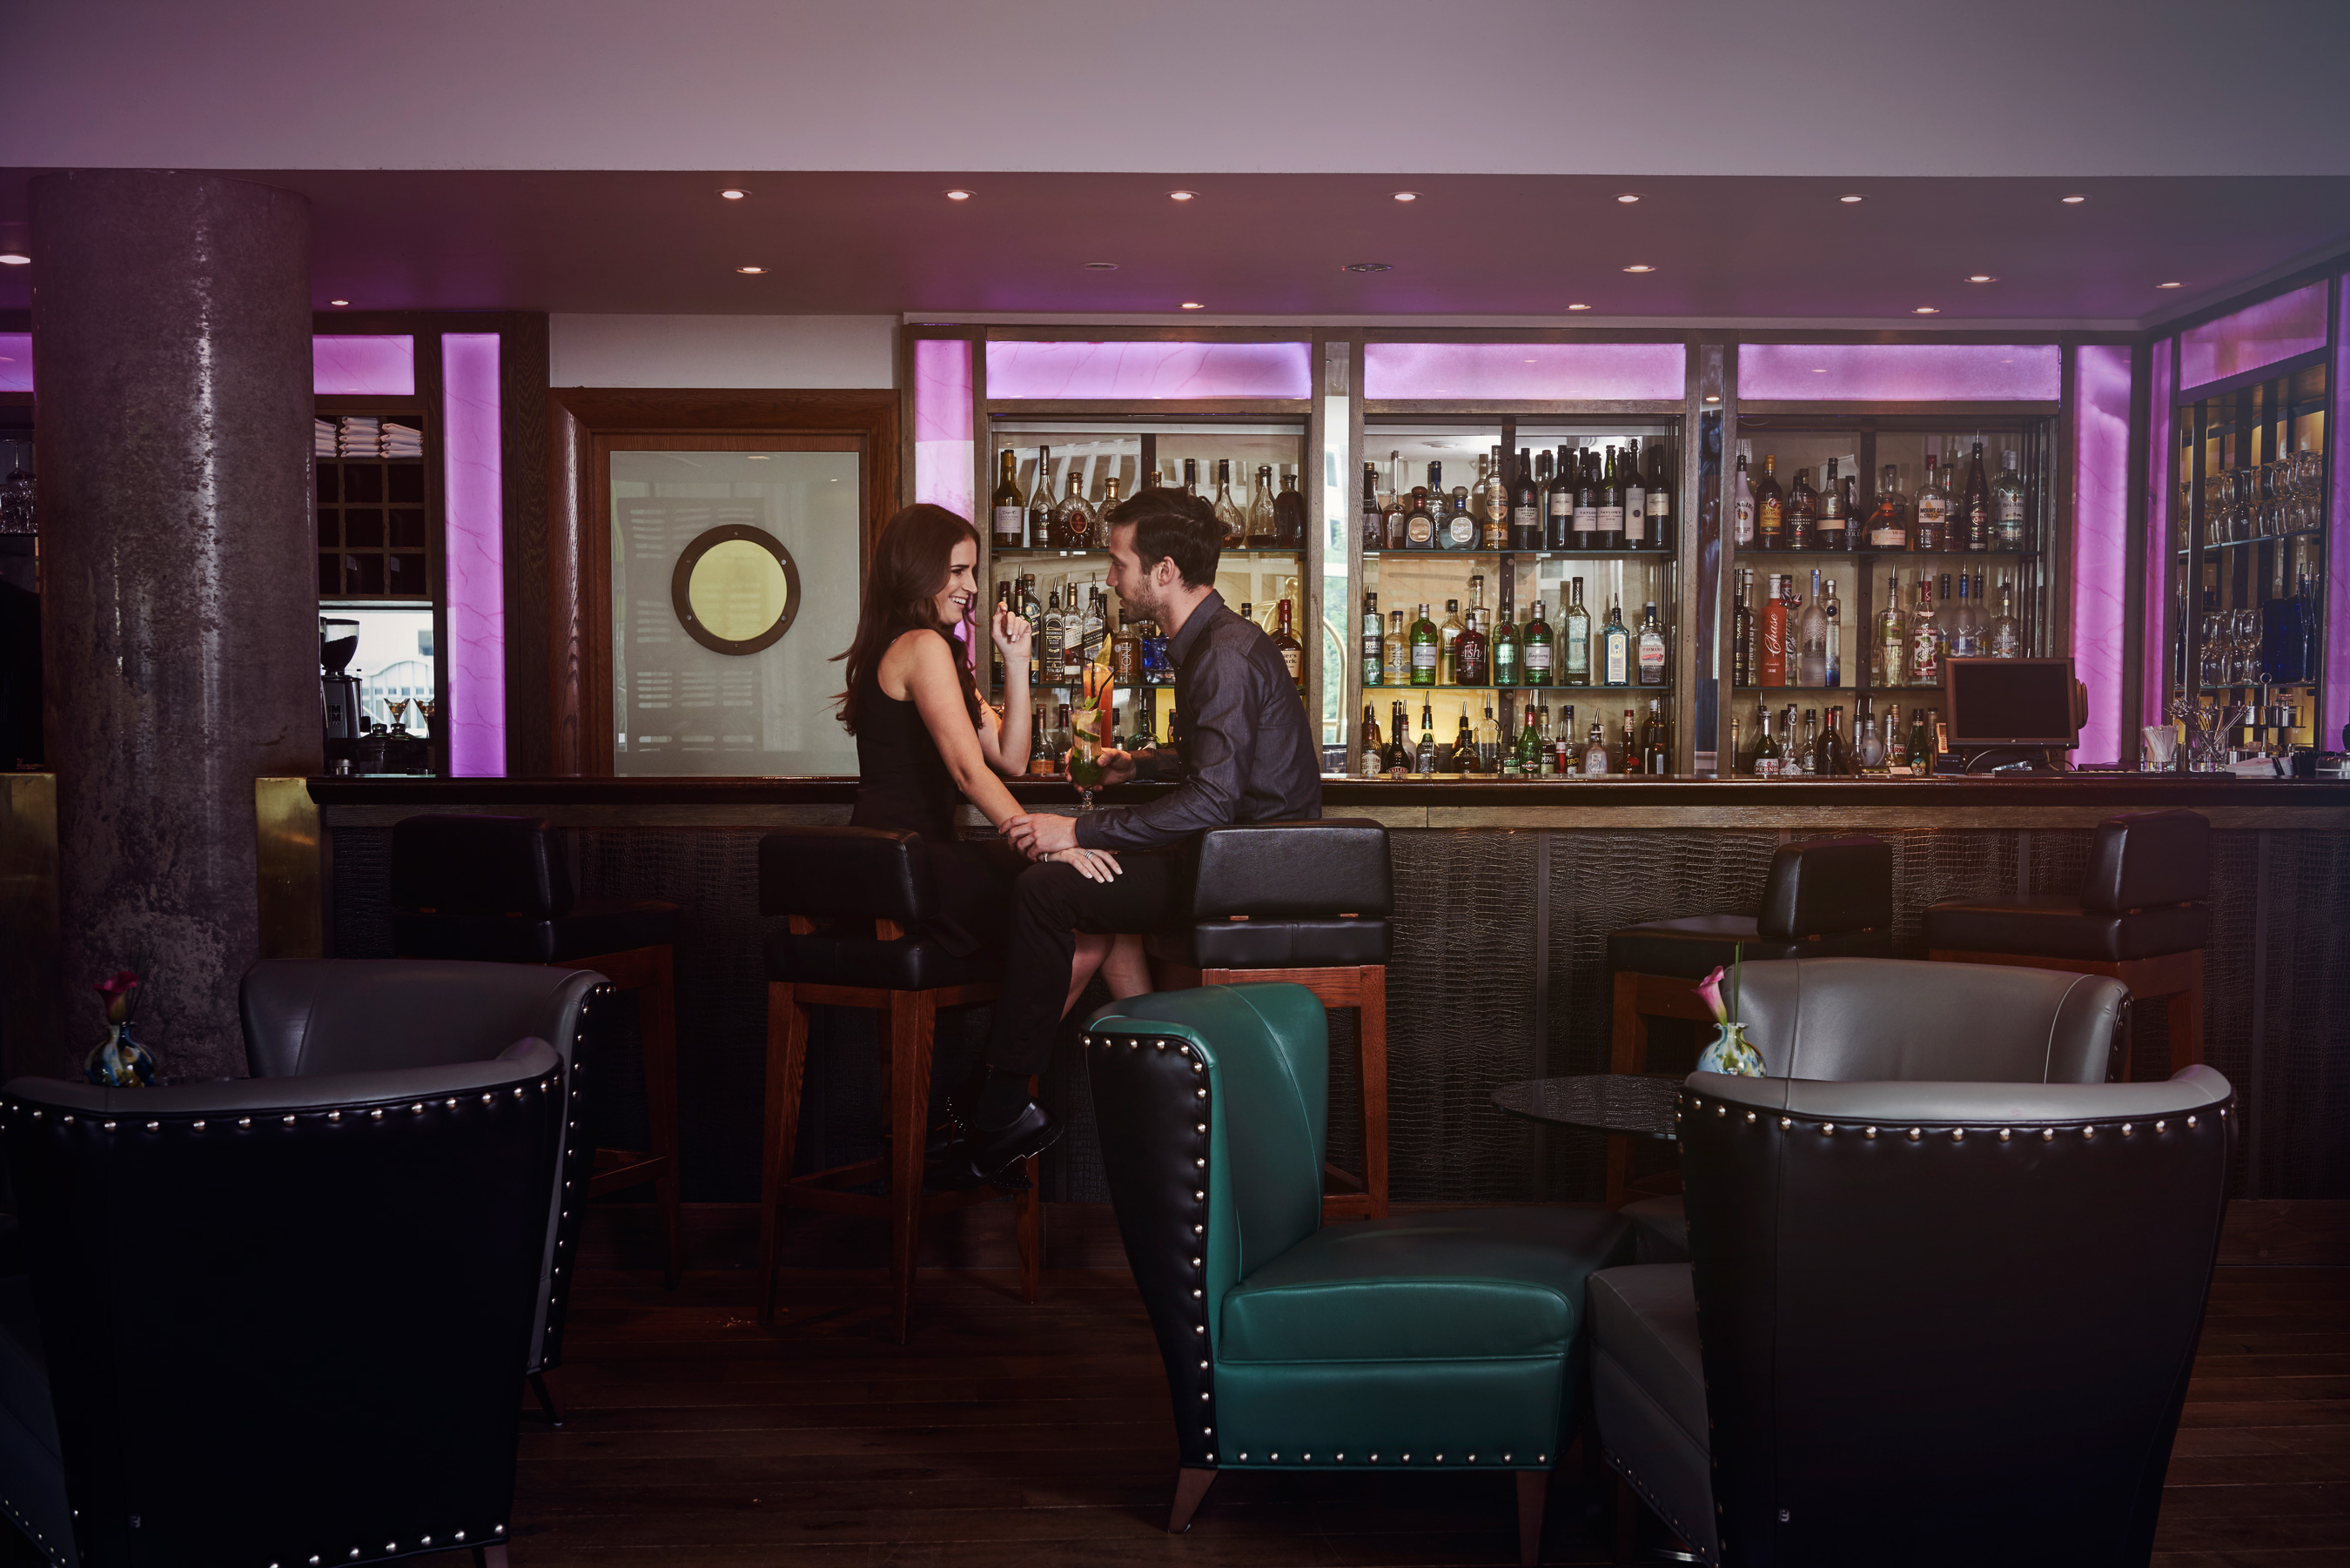 Matt-Stansfield-Lifestyle-photographer-advertising-Lowry-Hotel-5029